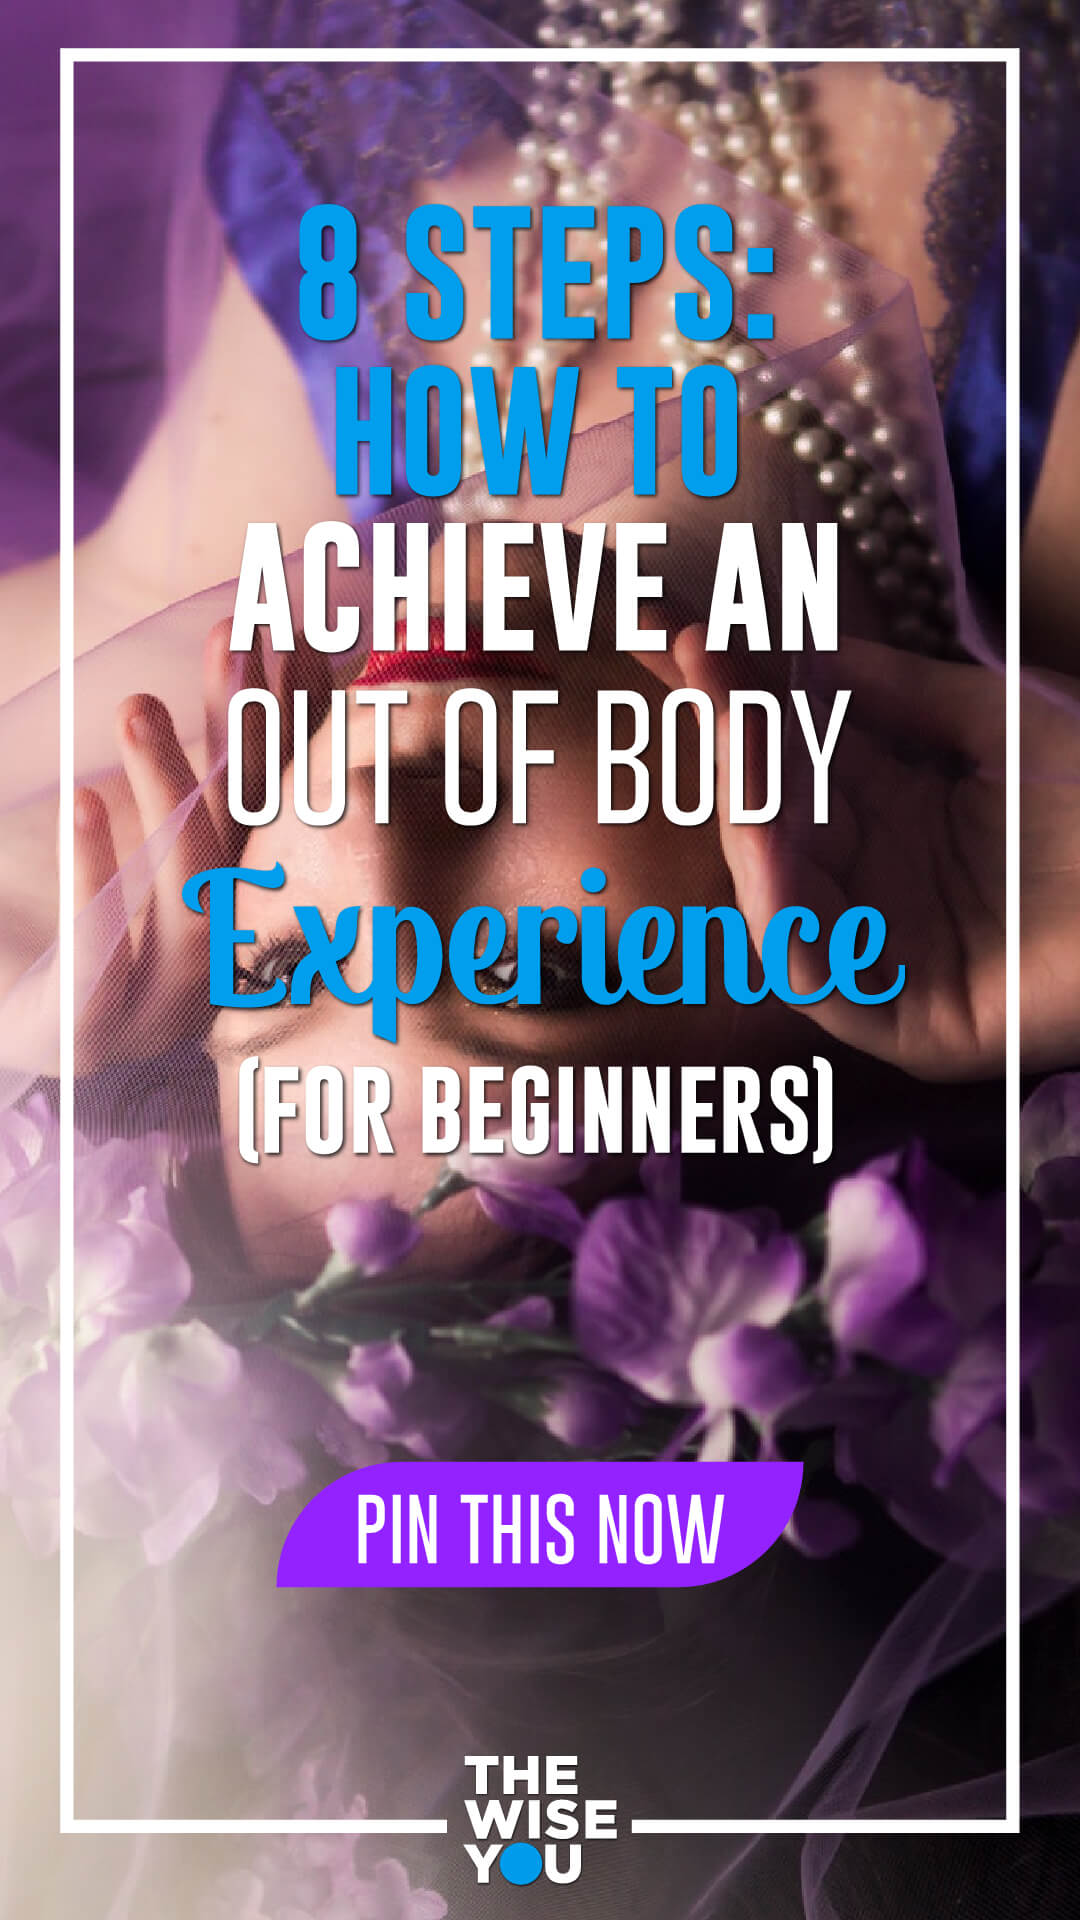 How to Achieve an Out of Body Experience